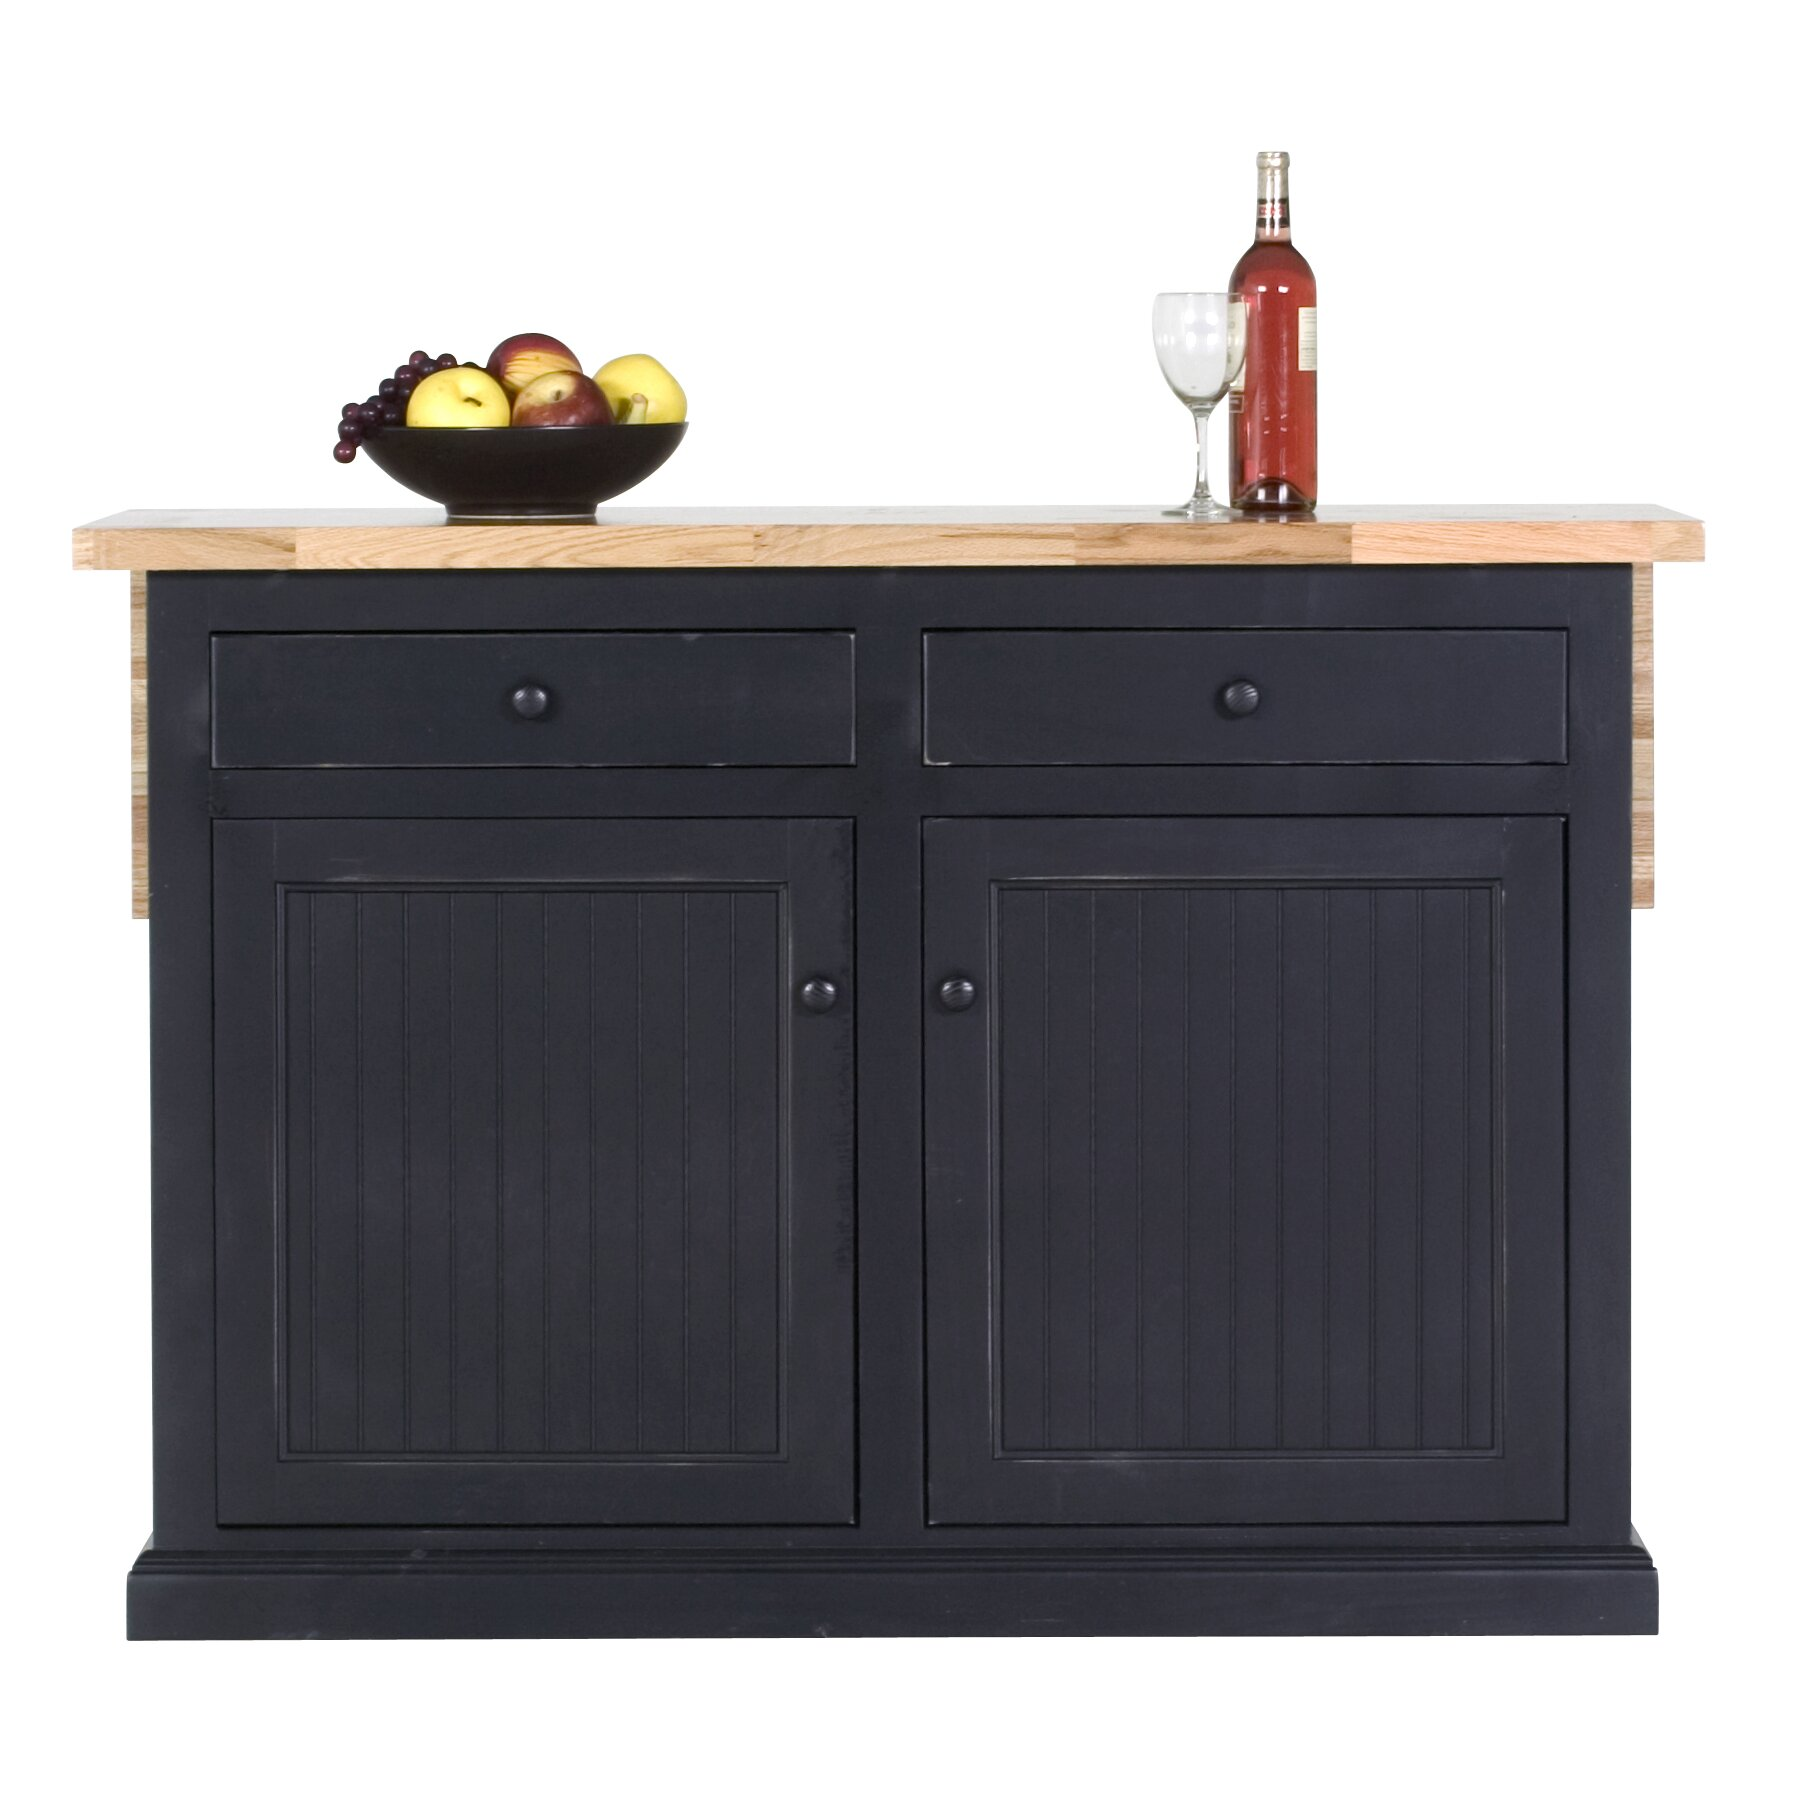 Haleakala Kitchen Island With Butcher Block Top : Breakwater Bay Meredith Kitchen Island with Butcher Block Top & Reviews Wayfair